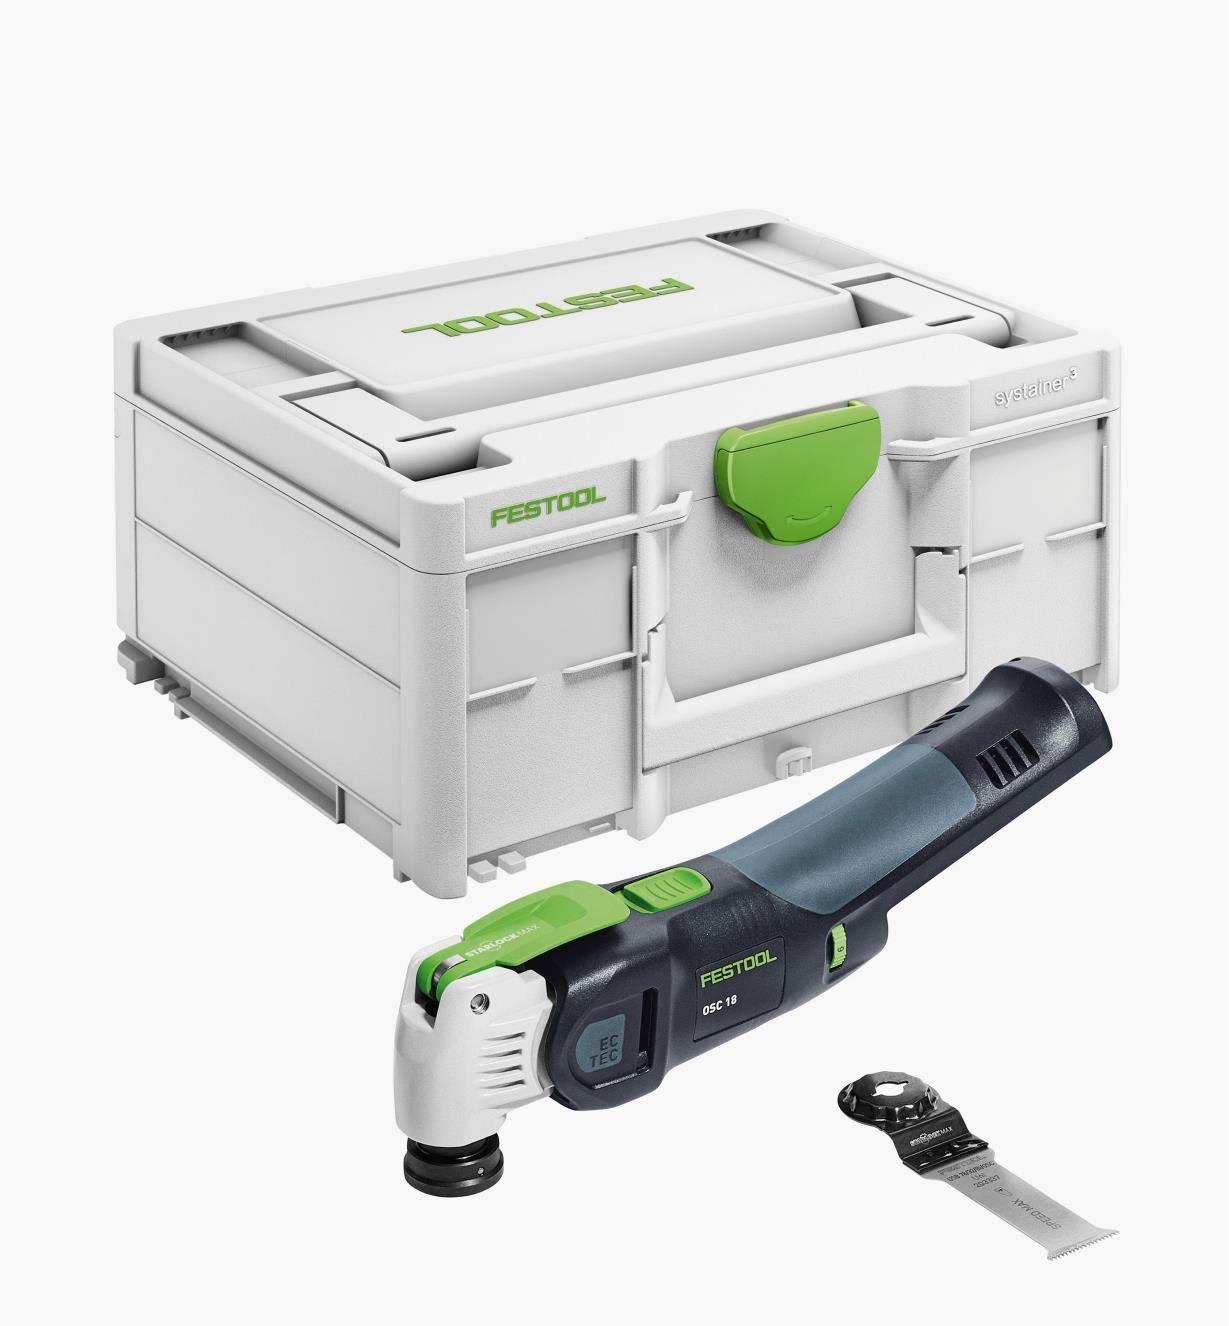 ZC576589 - Festool Vecturo OSC 18 Cordless Oscillating Tool Basic